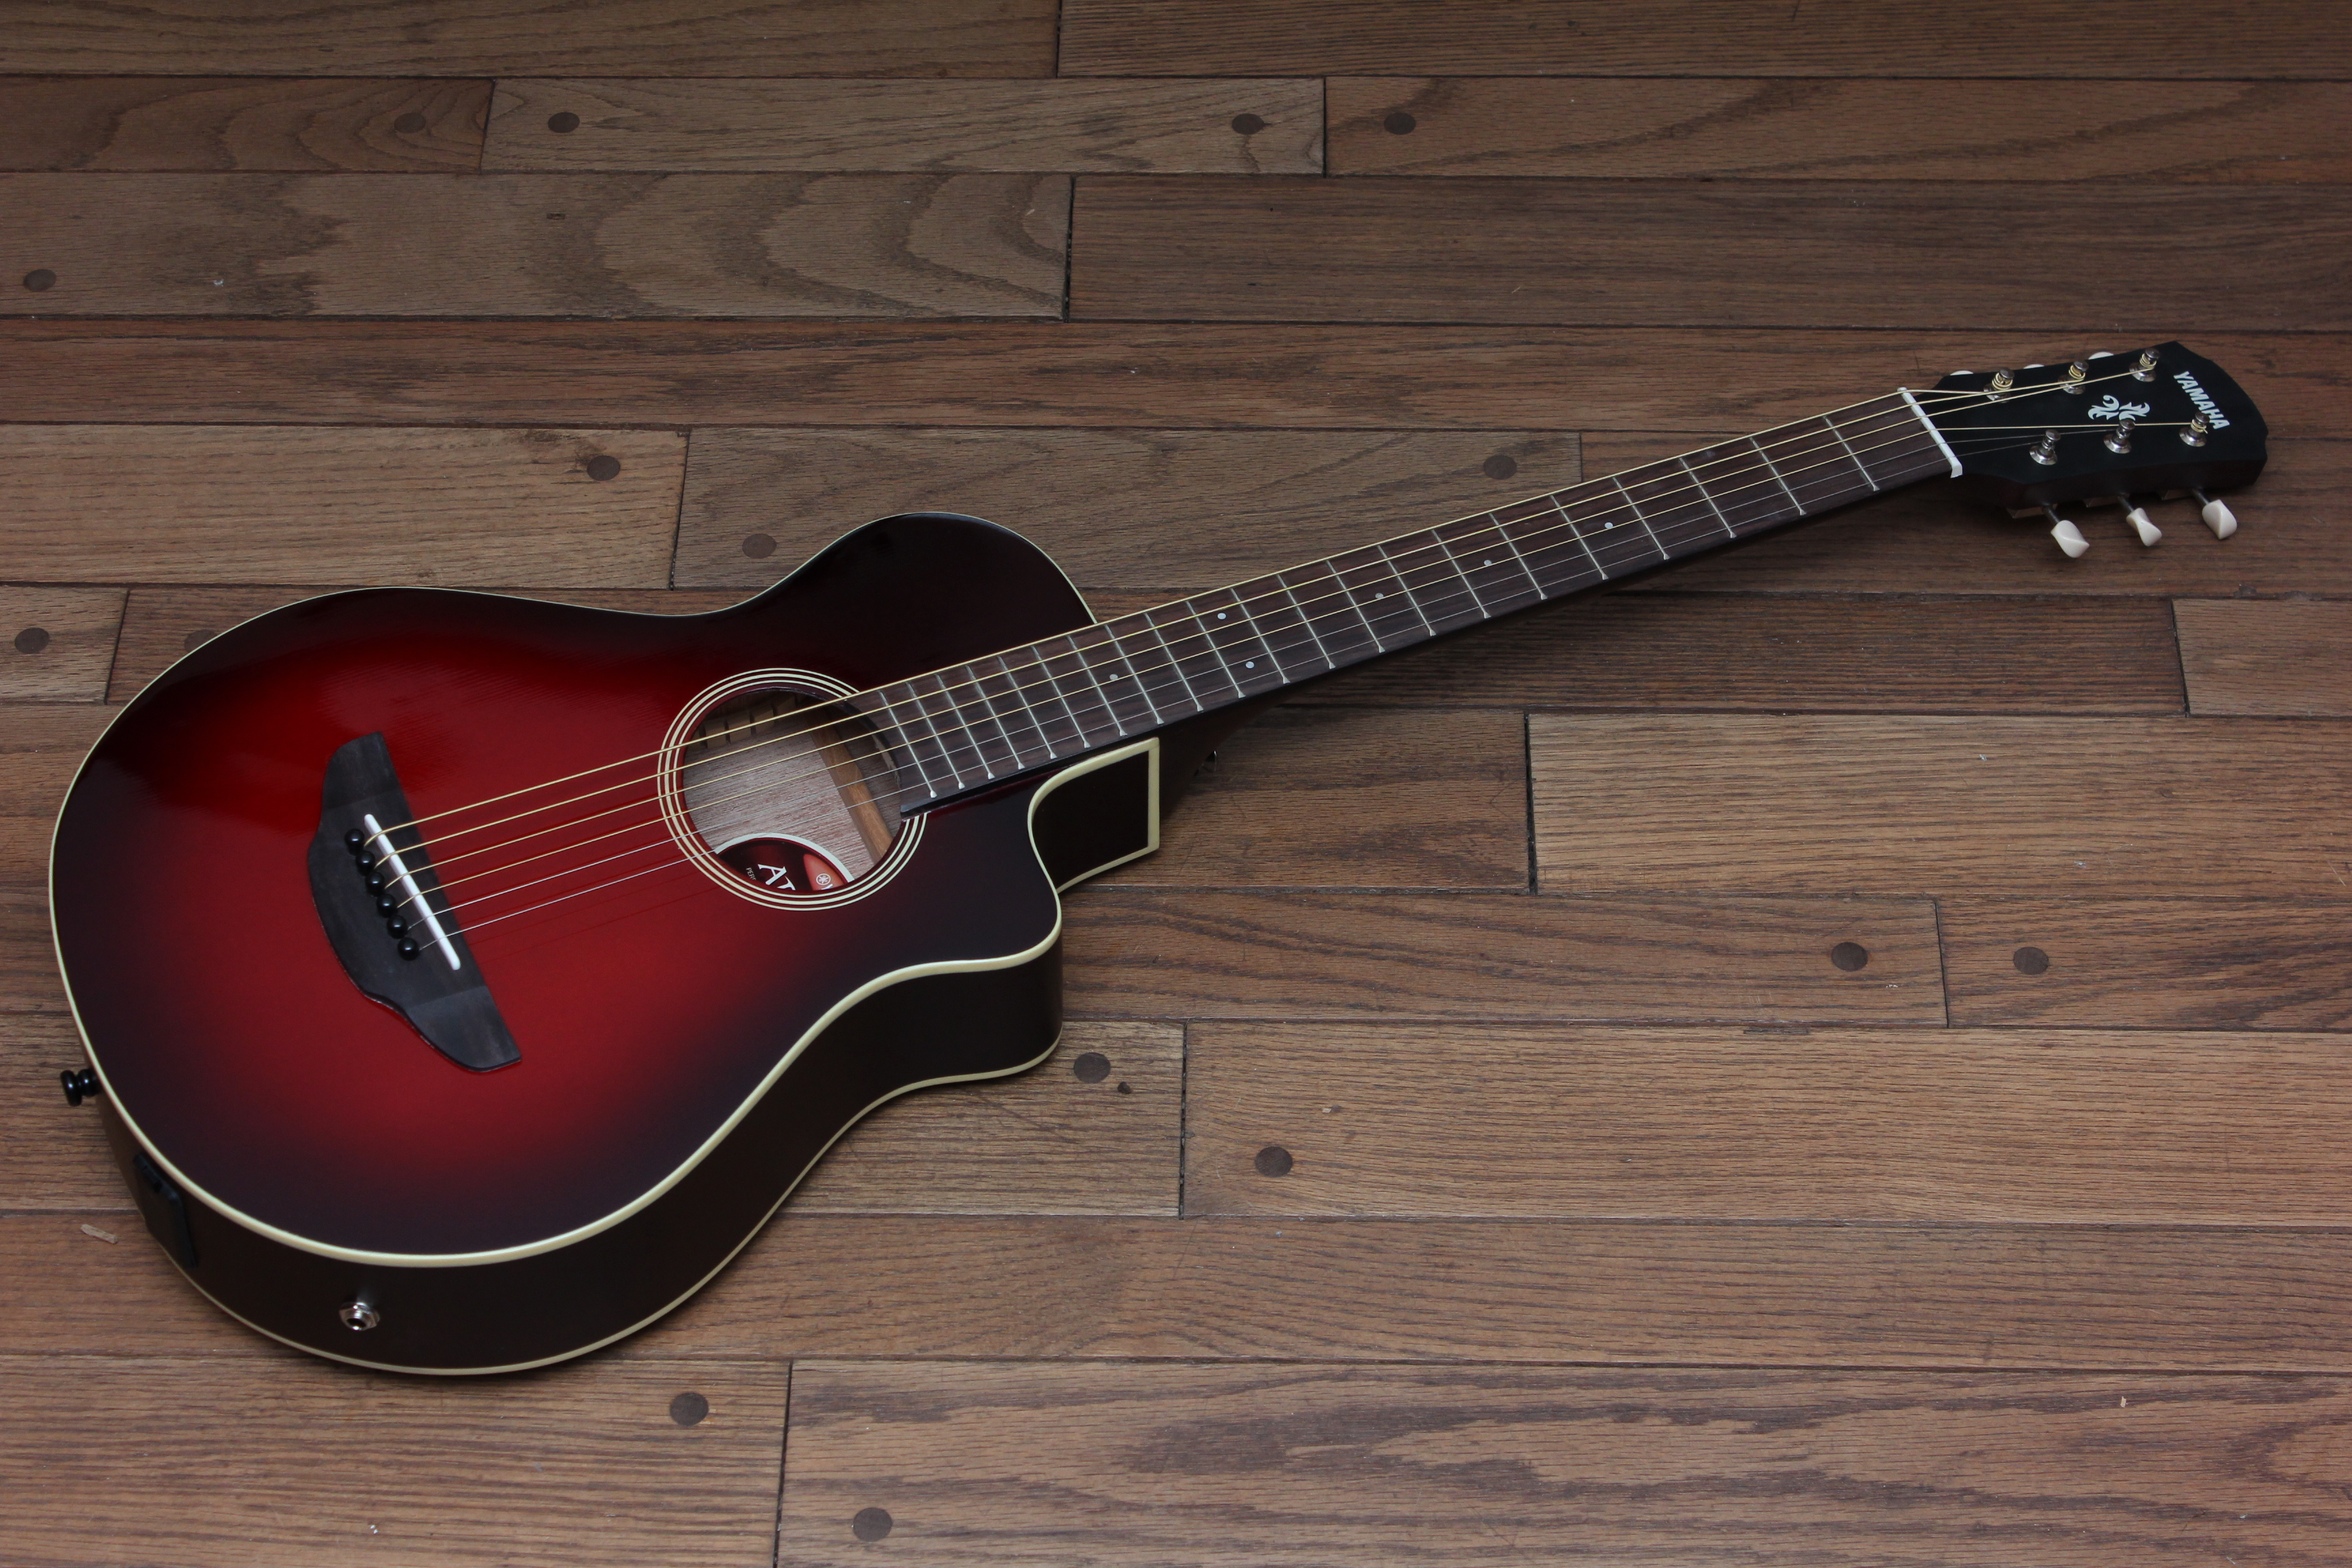 yamaha apxt2 dark red burst travel acoustic electric guitar guitars united. Black Bedroom Furniture Sets. Home Design Ideas